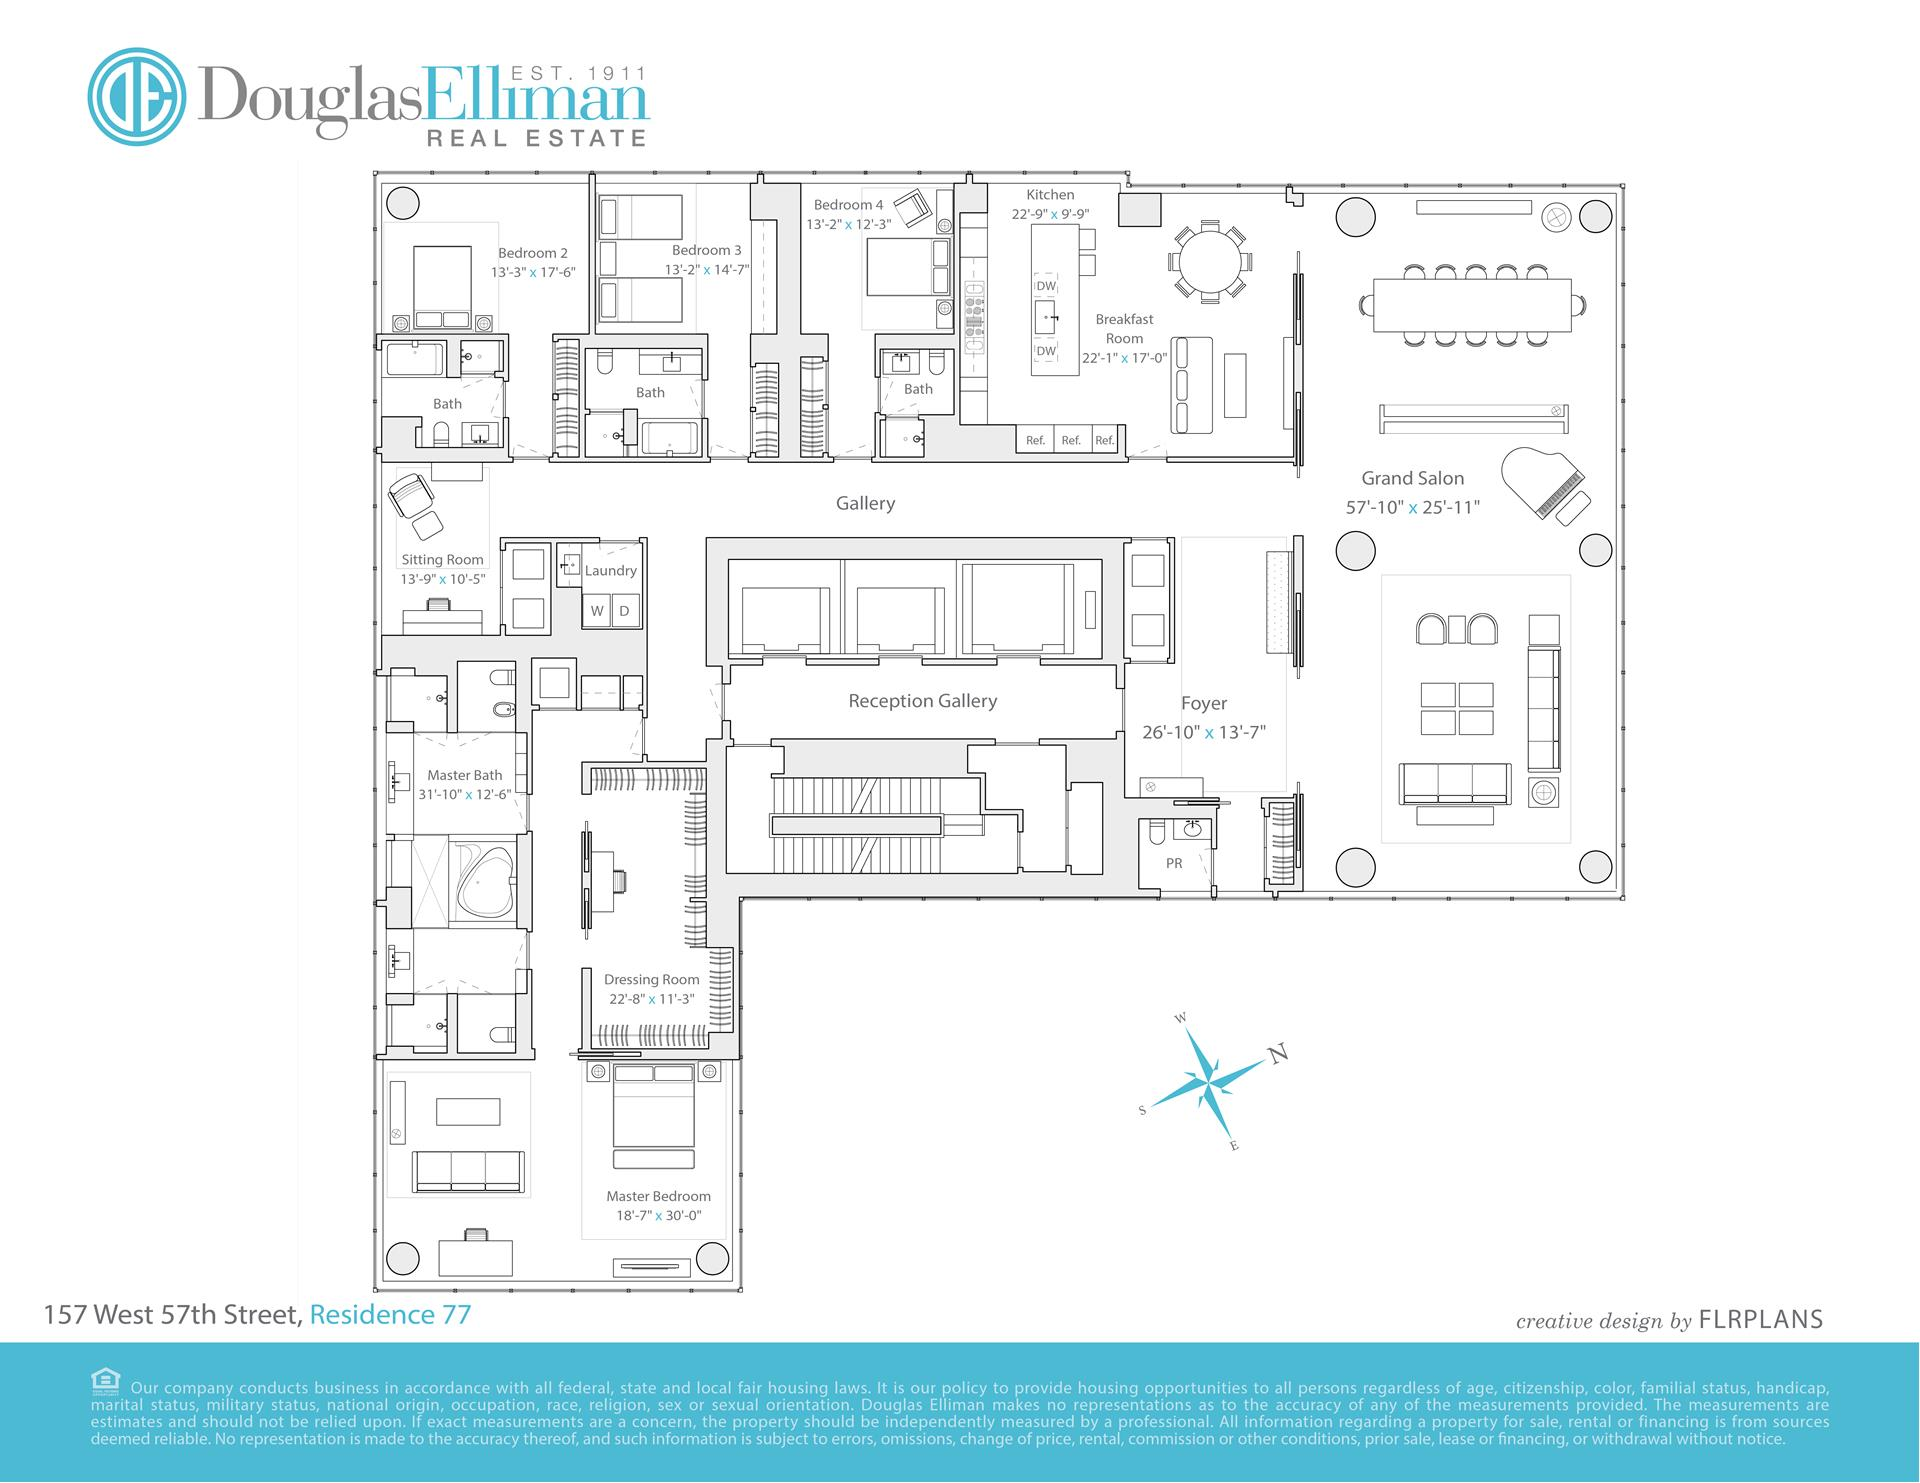 Floor plan of One57, 157 West 57th St, 77 - Central Park South, New York